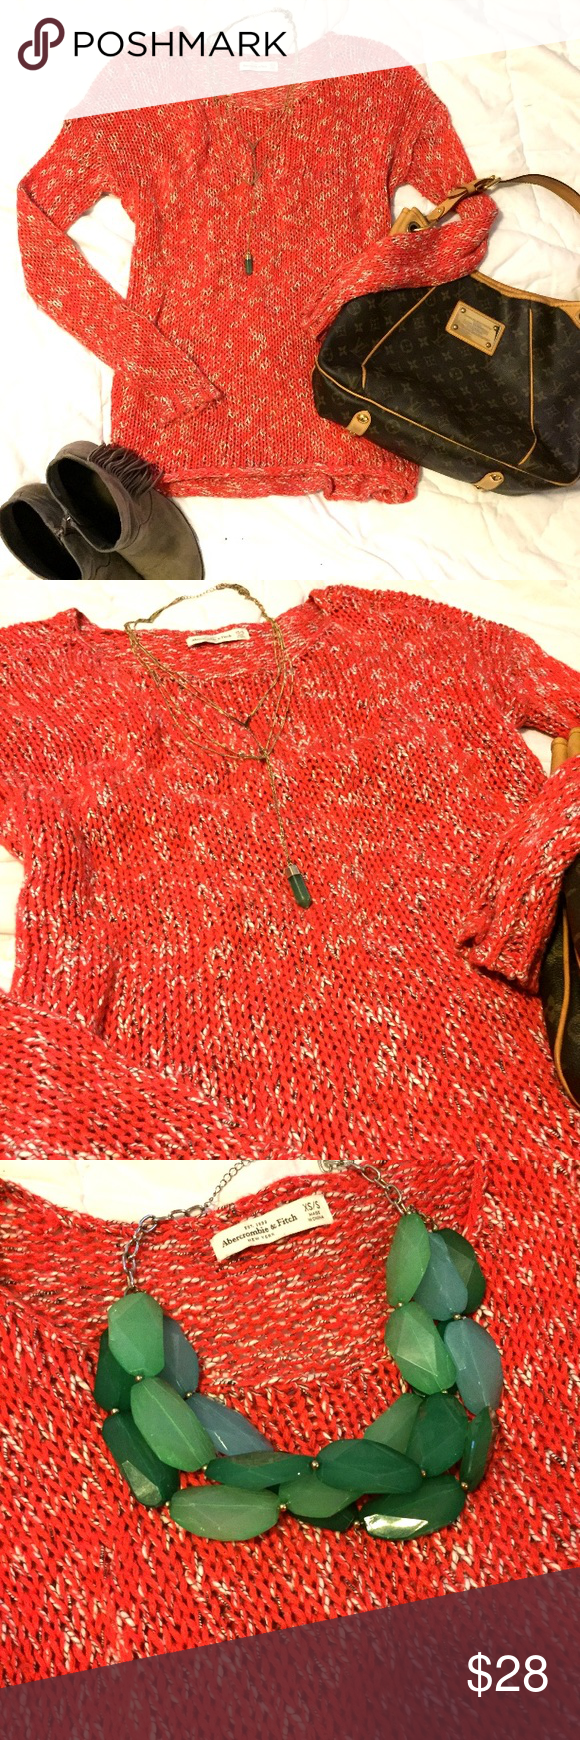 Pretty orange open knit comfy sweater Great oversized fit. Cute with leggings or jeans 💕 size XS/S but can fit a M easily Abercrombie & Fitch Sweaters Crew & Scoop Necks